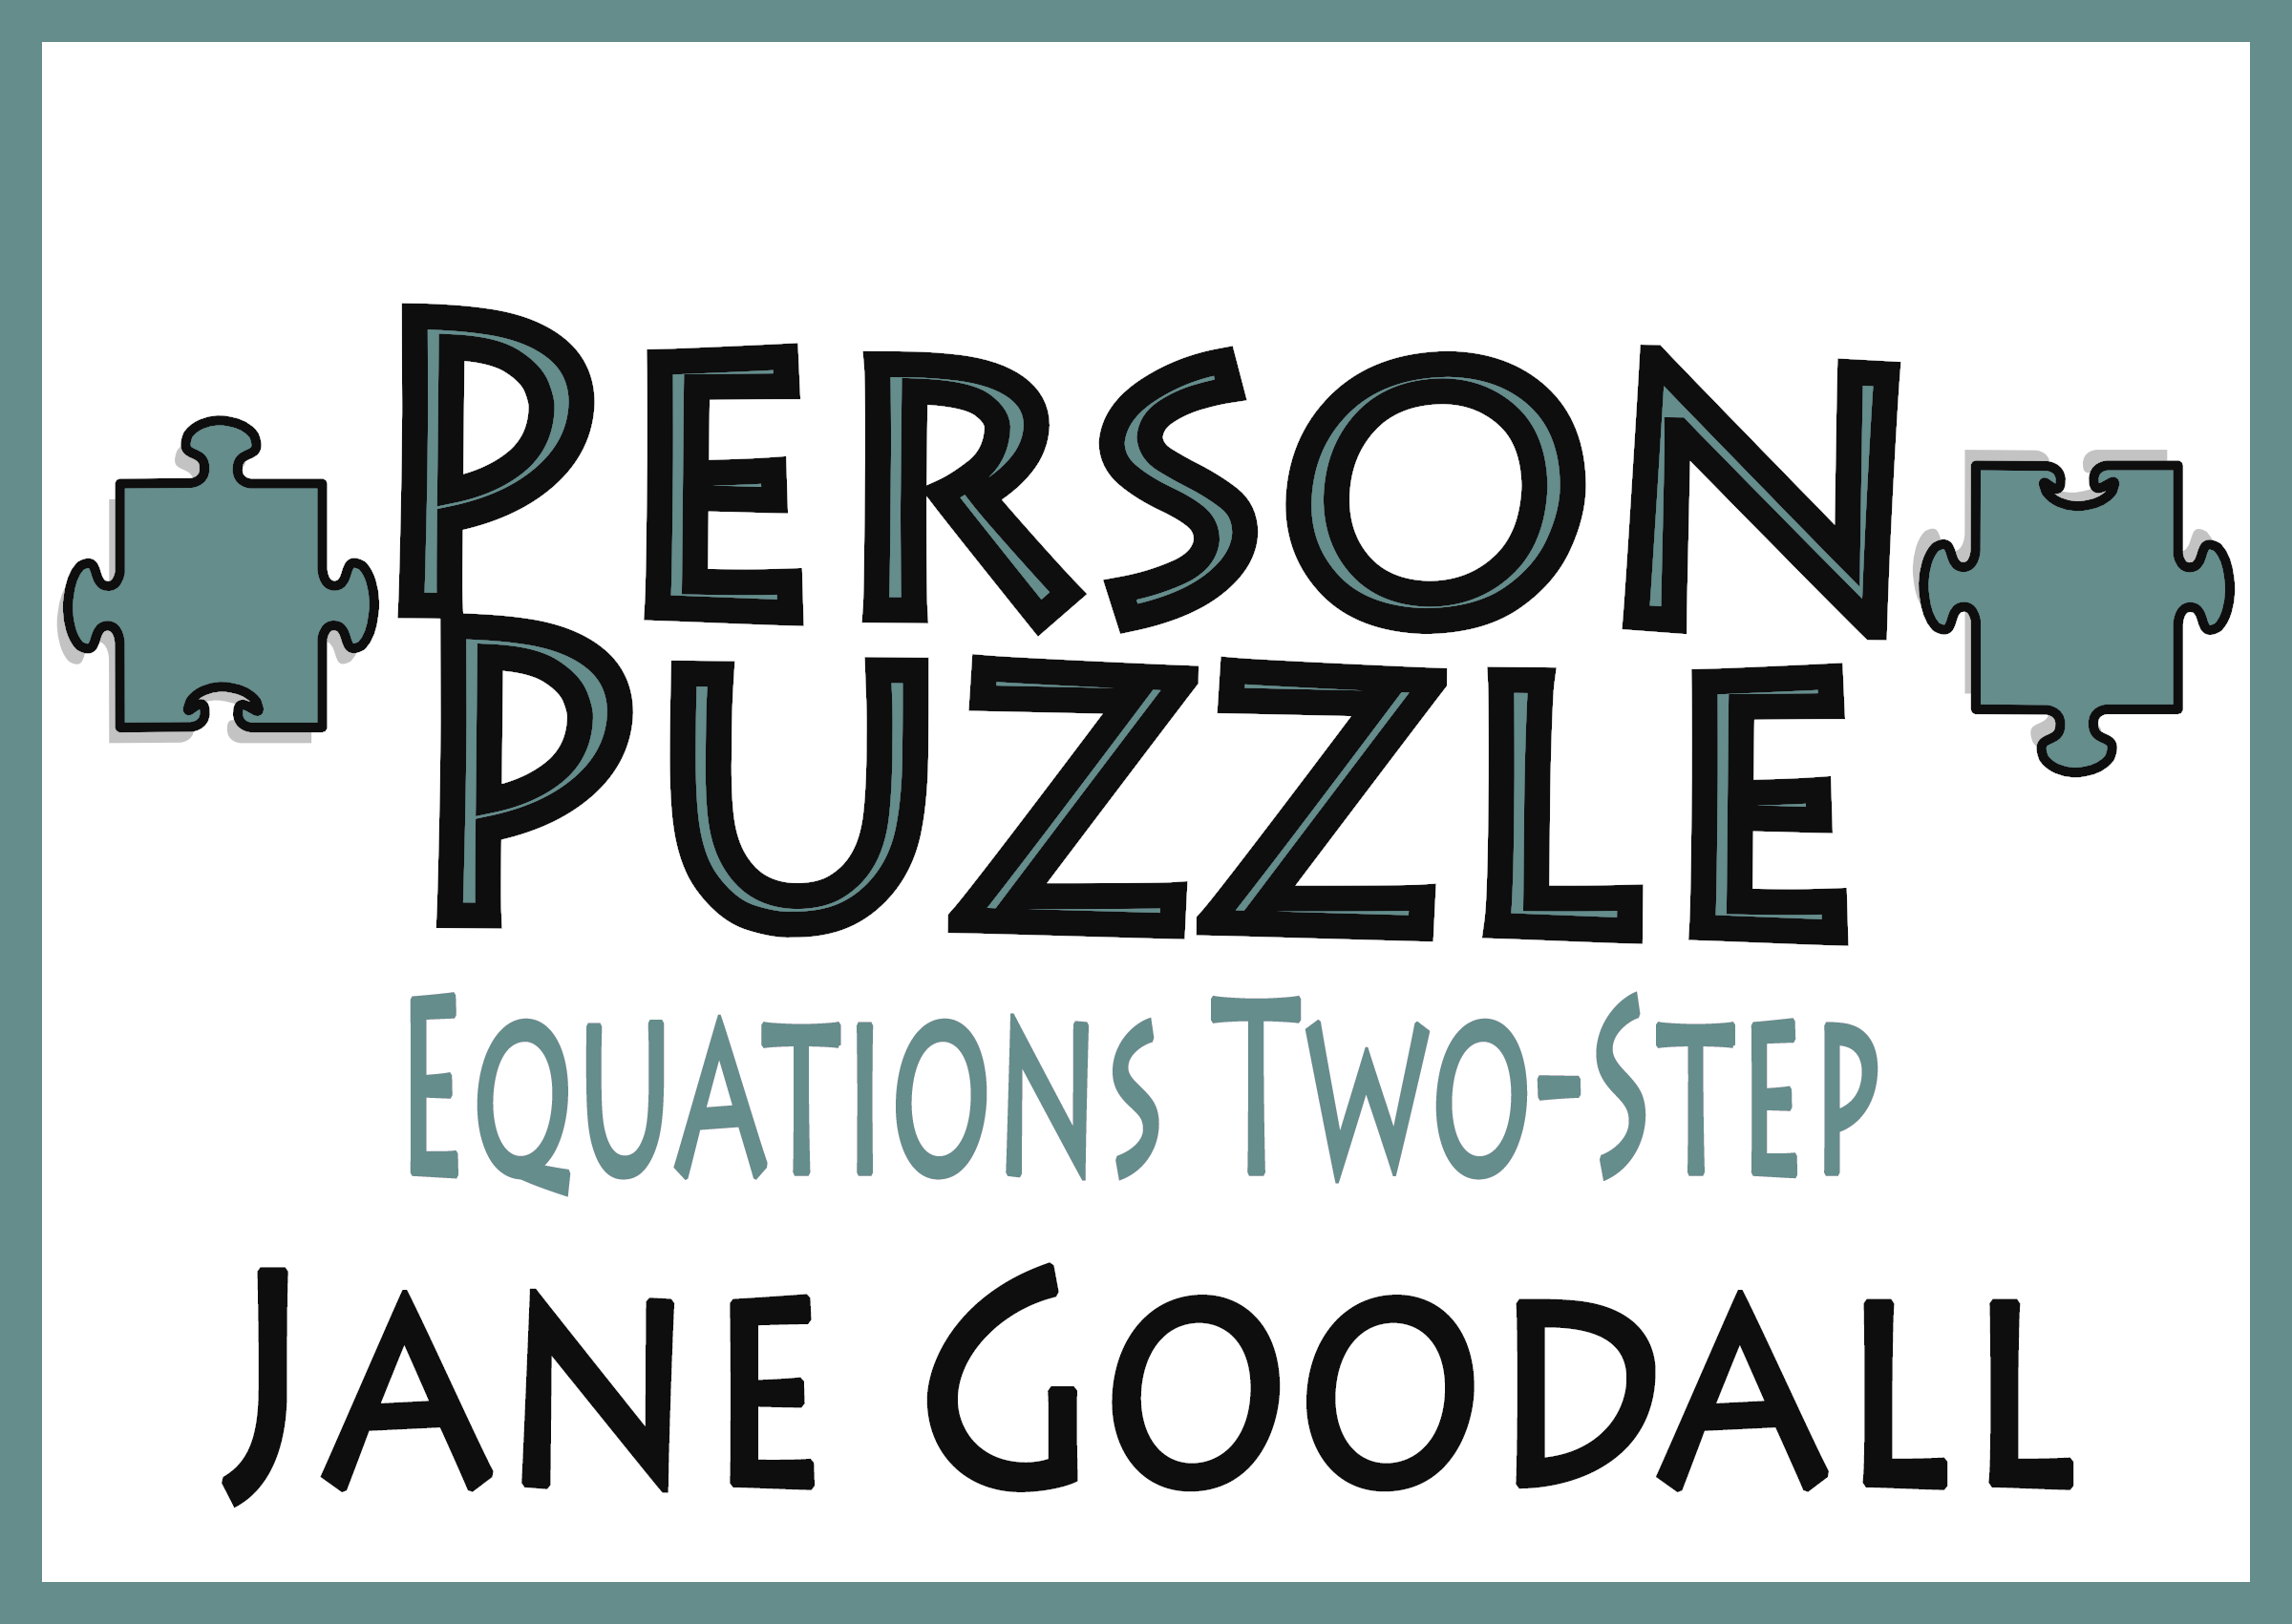 worksheet Equations Puzzle Worksheet person puzzle equations two step jane goodall worksheet